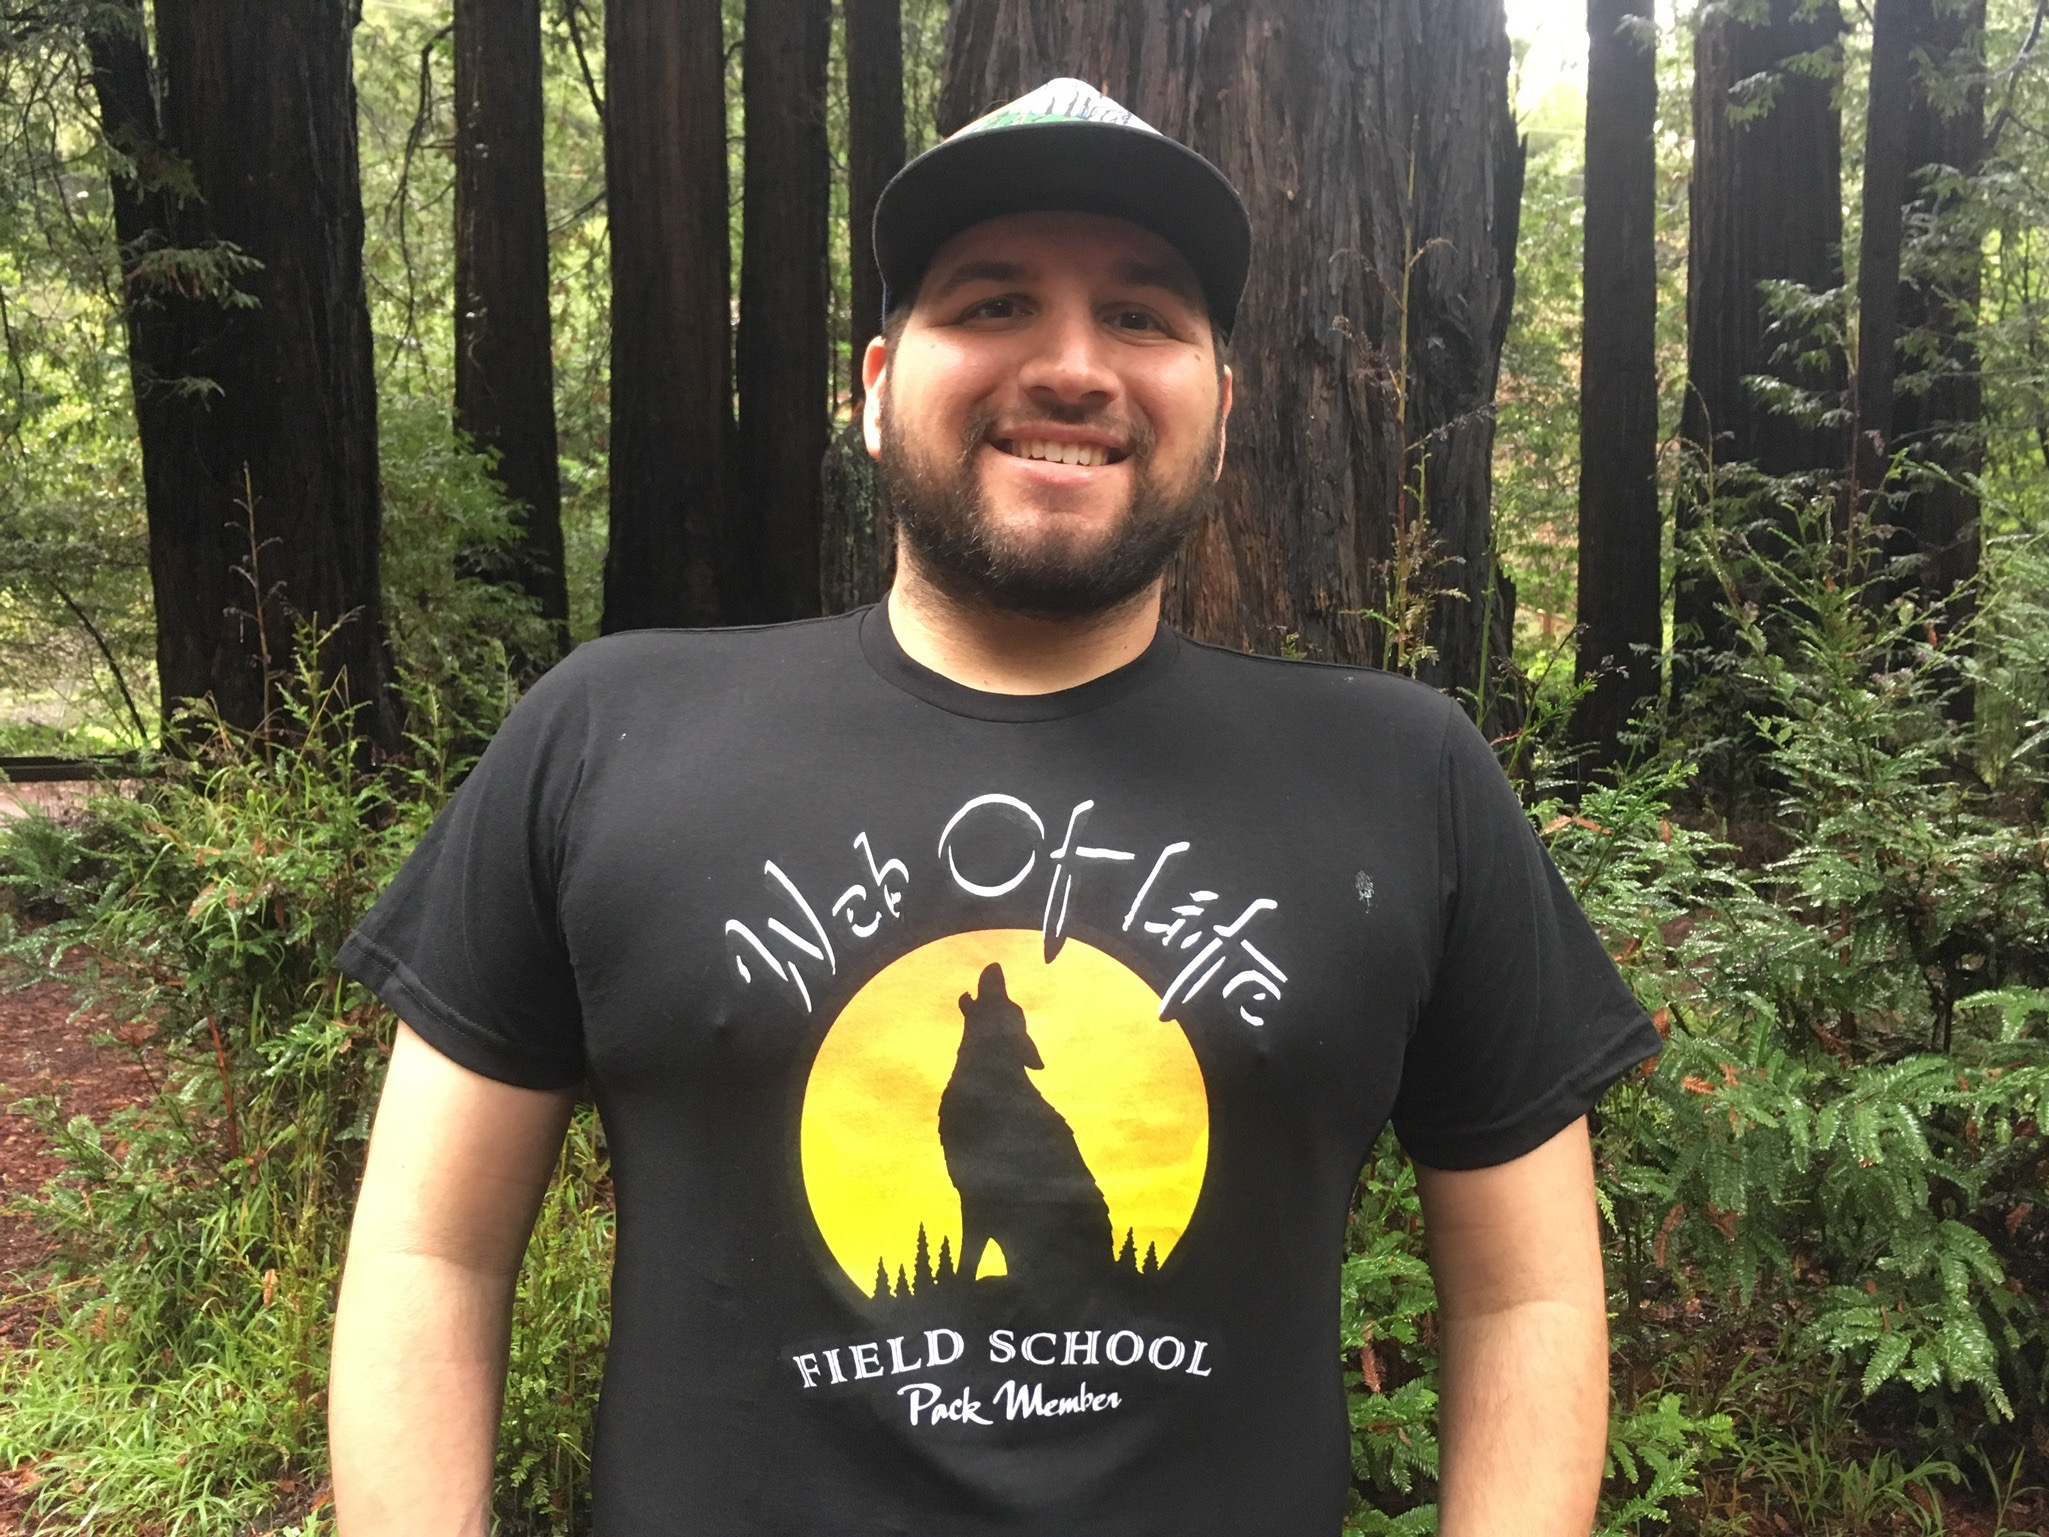 New WOLF School Merch! 100% Recycled T-Shirt in Black, Worn by Naturalist Treetop.jpg